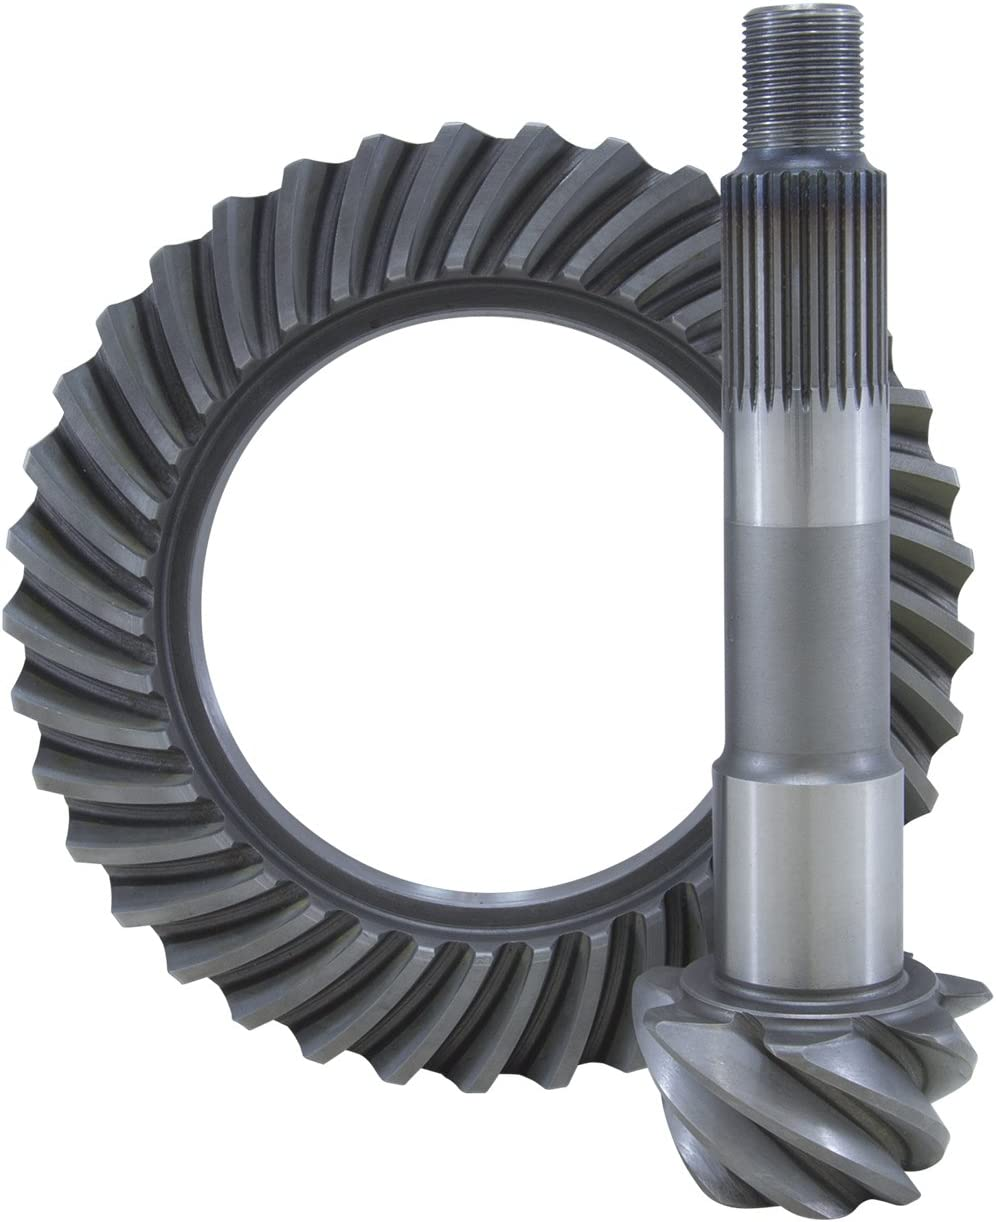 Yukon High Performance Ring and Pinion Gear Set for Toyota 8 Differential YG T8-529